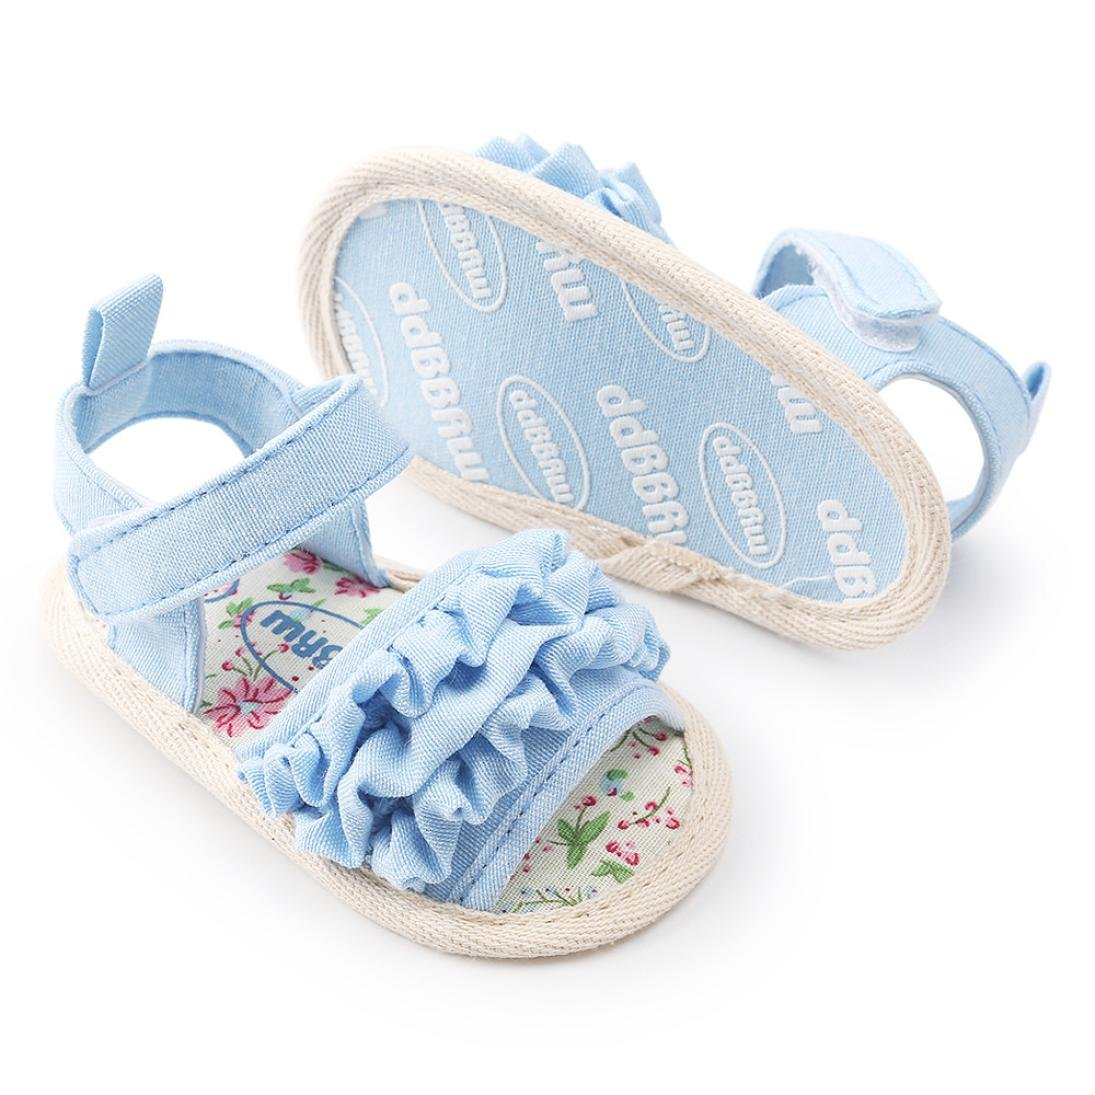 Witspace Baby Girls Flower Sandals Toddler Kids Anti-slip Sneaker Soft Sole Summer Shoes